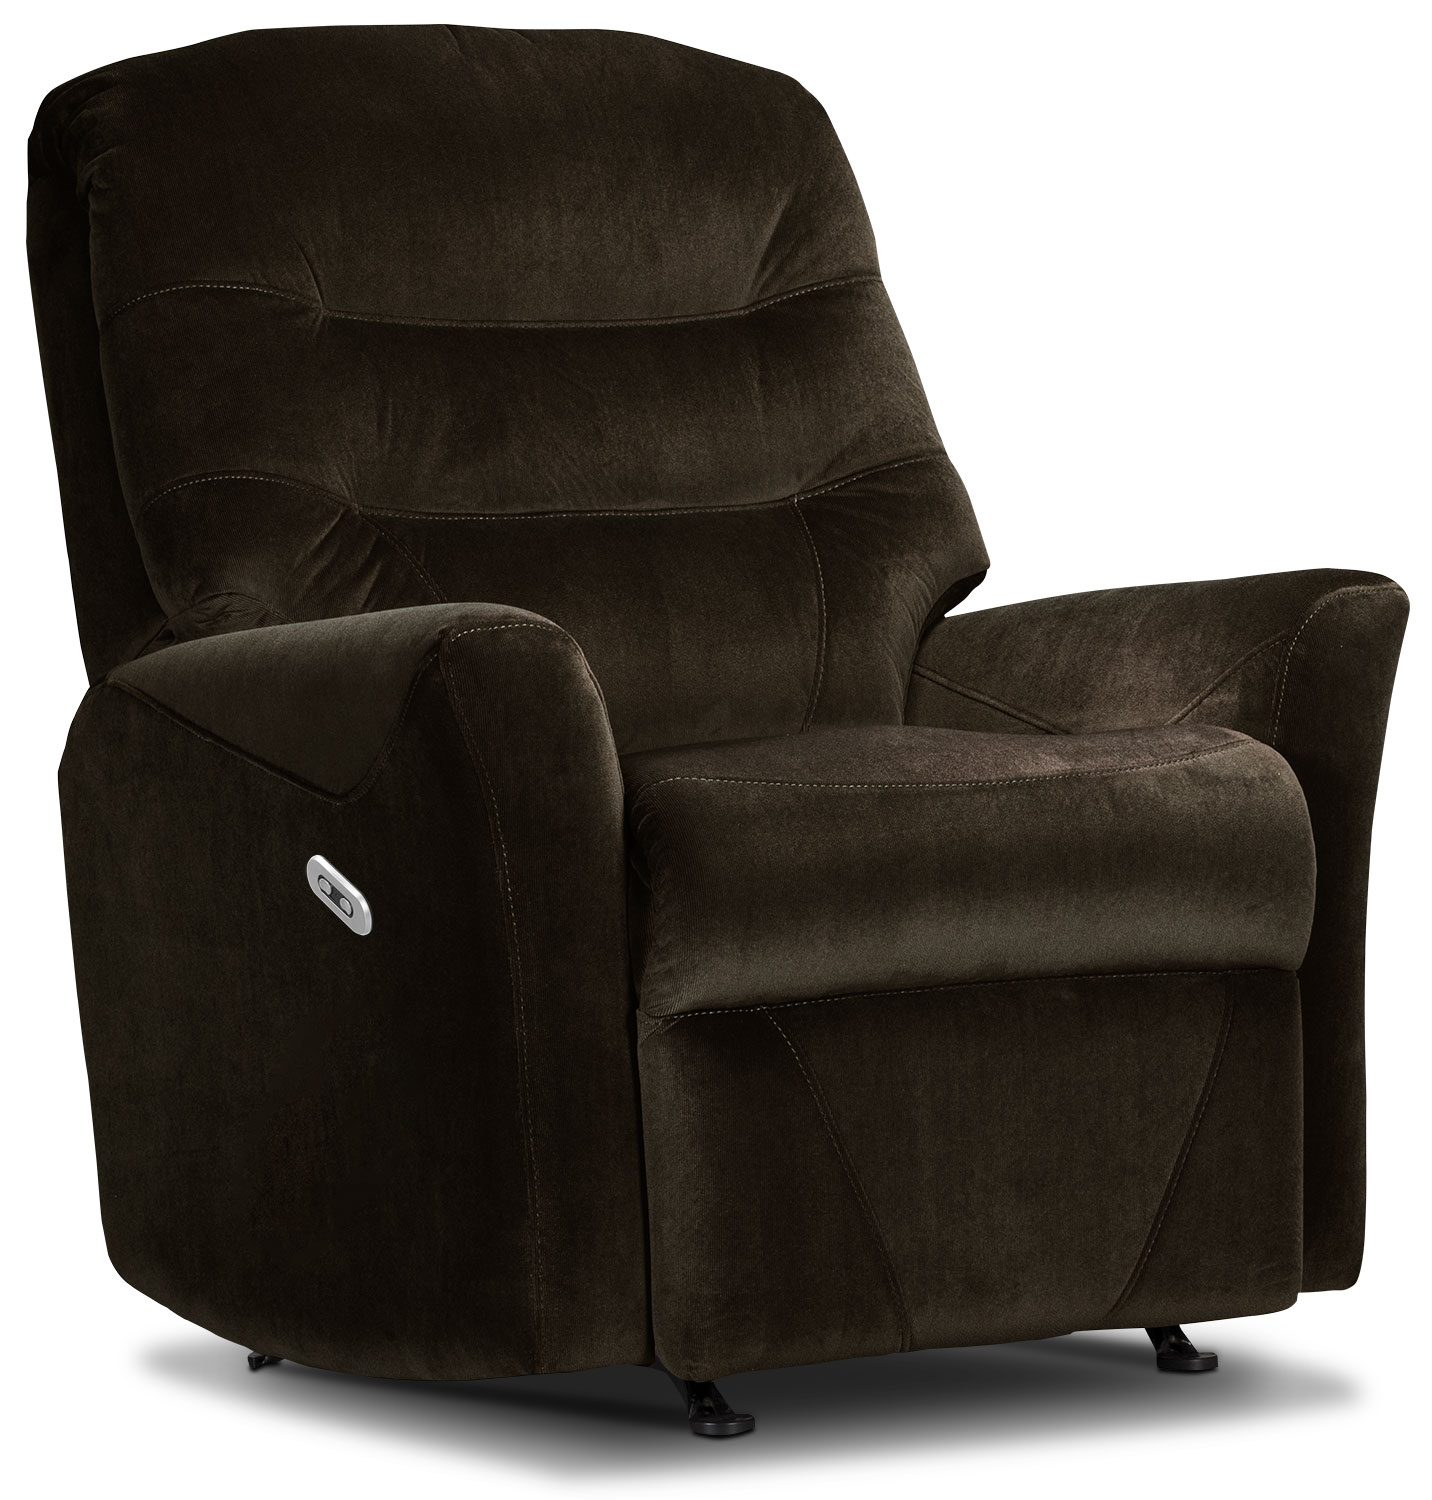 Designed2B Recliner 4560 Microsuede Power Recliner - Chocolate